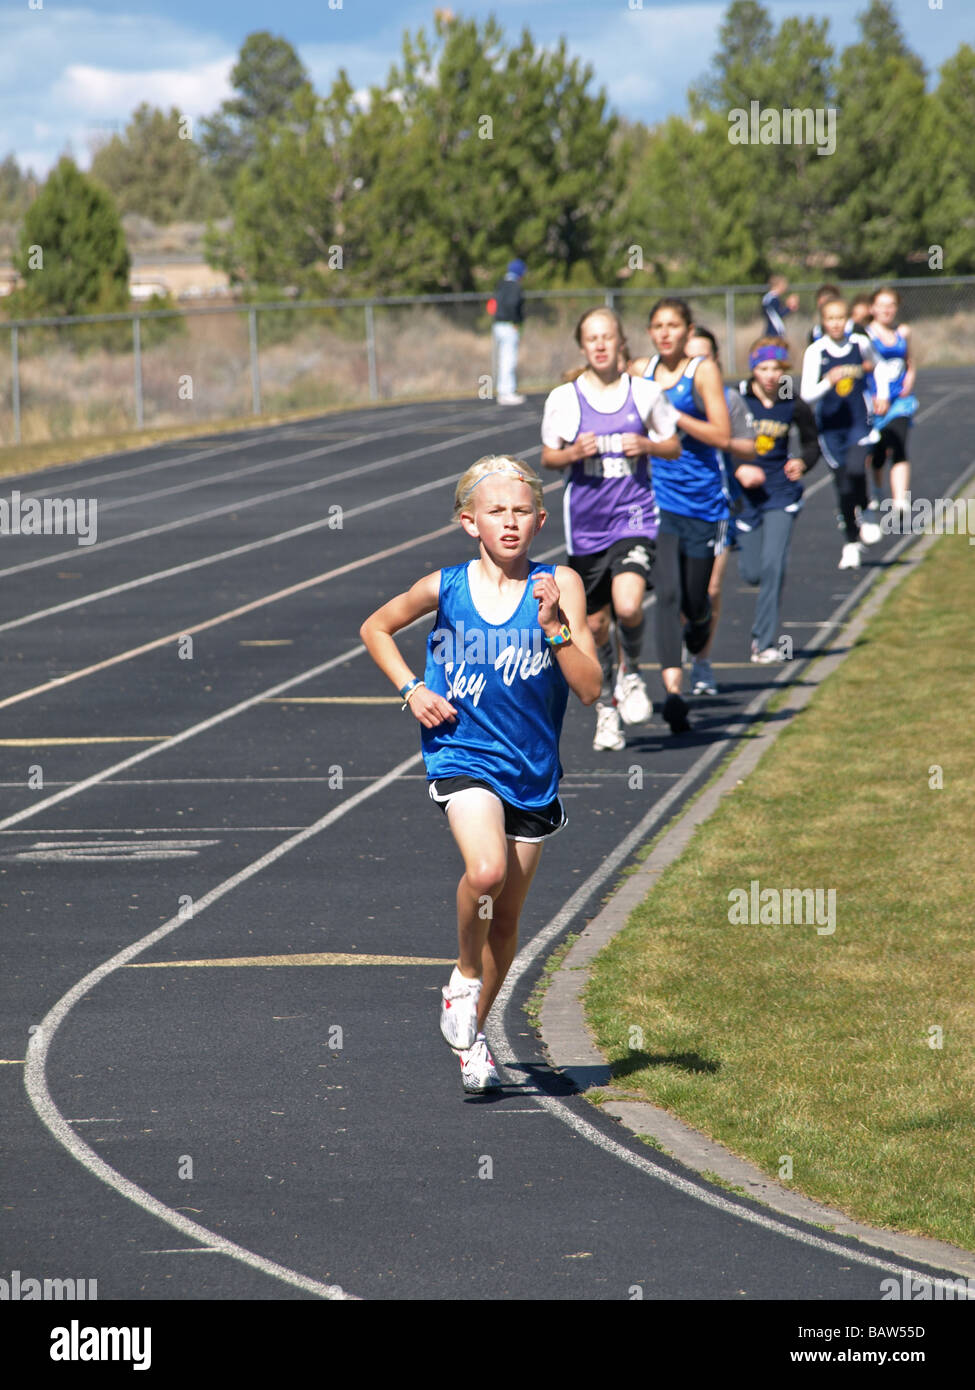 A 6th grader leads the 1500 meter race at a middle school track and field meet in Bend Oregon - Stock Image